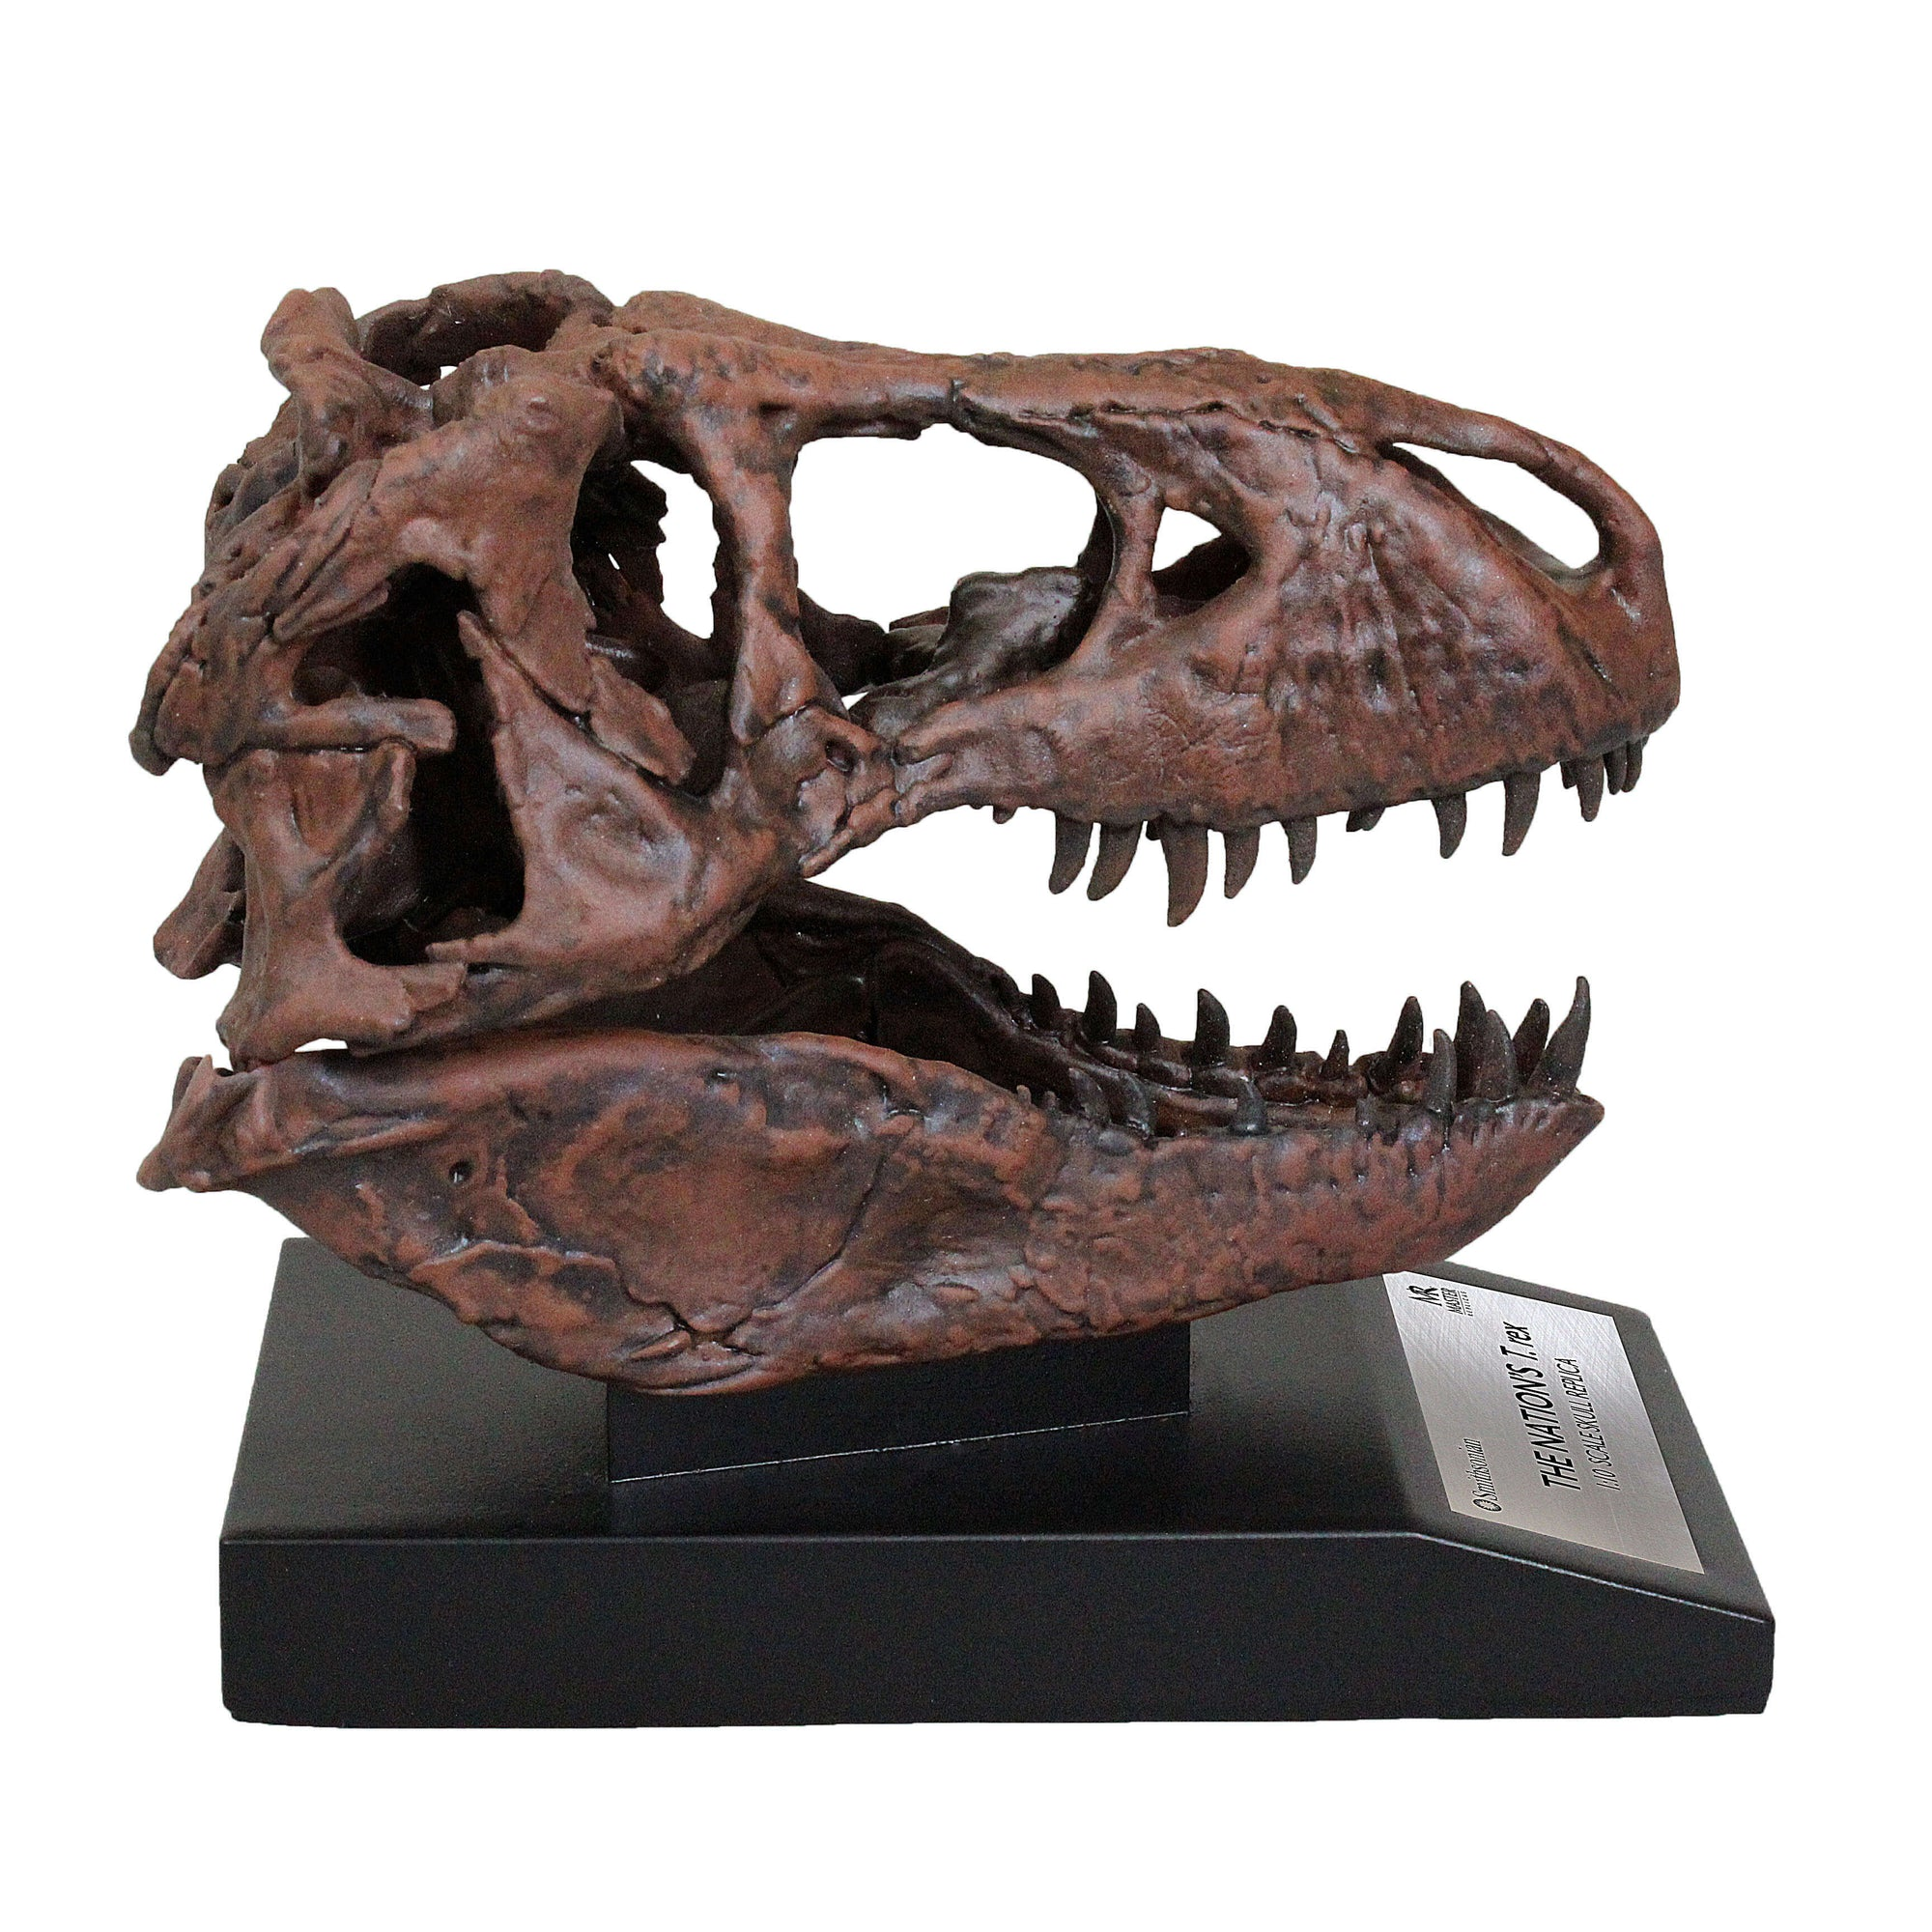 Smithsonian Nation's T. rex Tenth-Scale Fossil Skull Replica